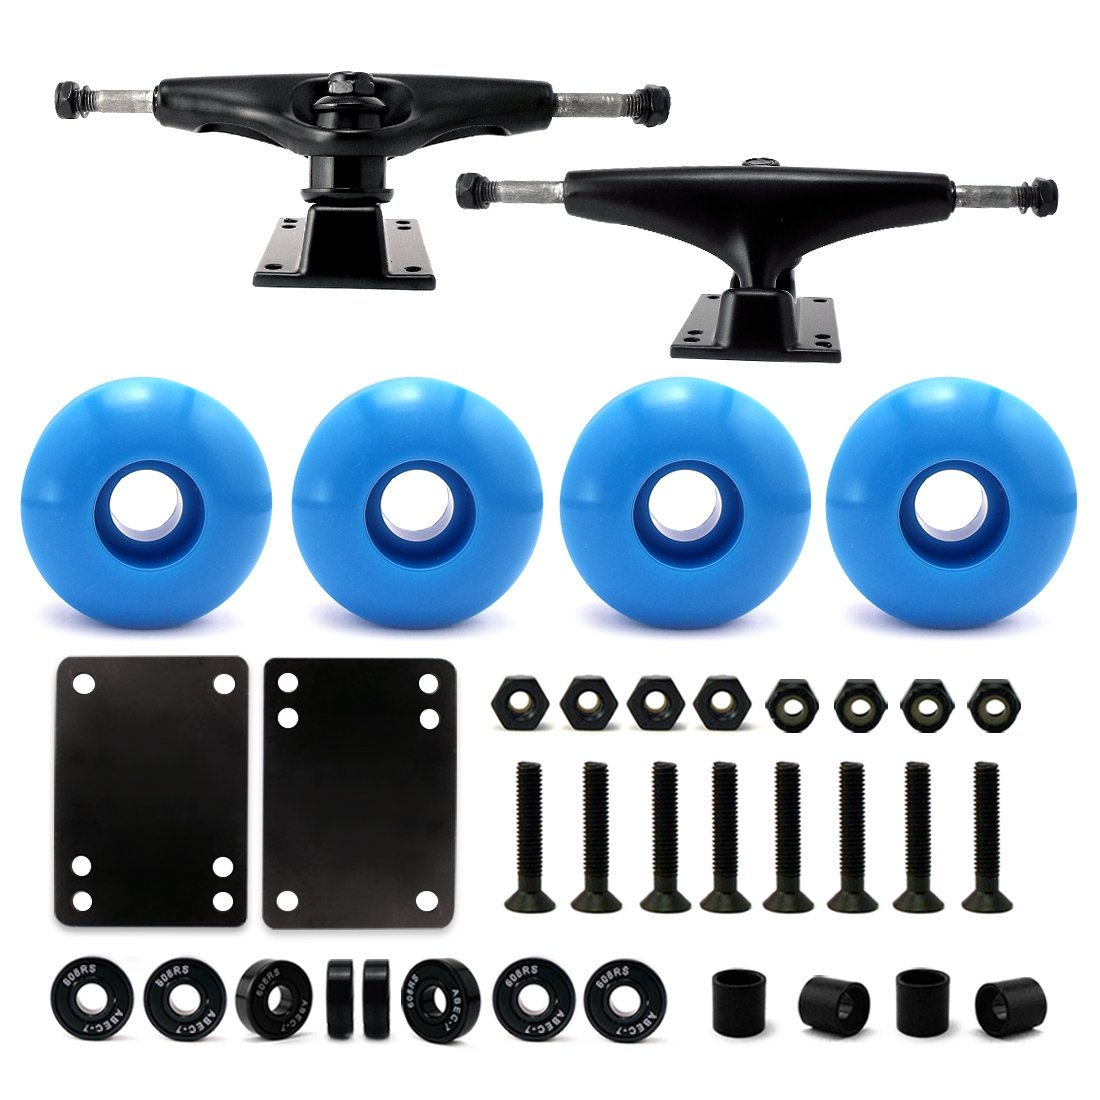 VJ 5.0 Skateboard Trucks (Black), Skateboard Wheels 52mm, Skateboard Bearings, Skateboard Pads, Skateboard Hardware 1'' (52mm Sky Blue) by VJ